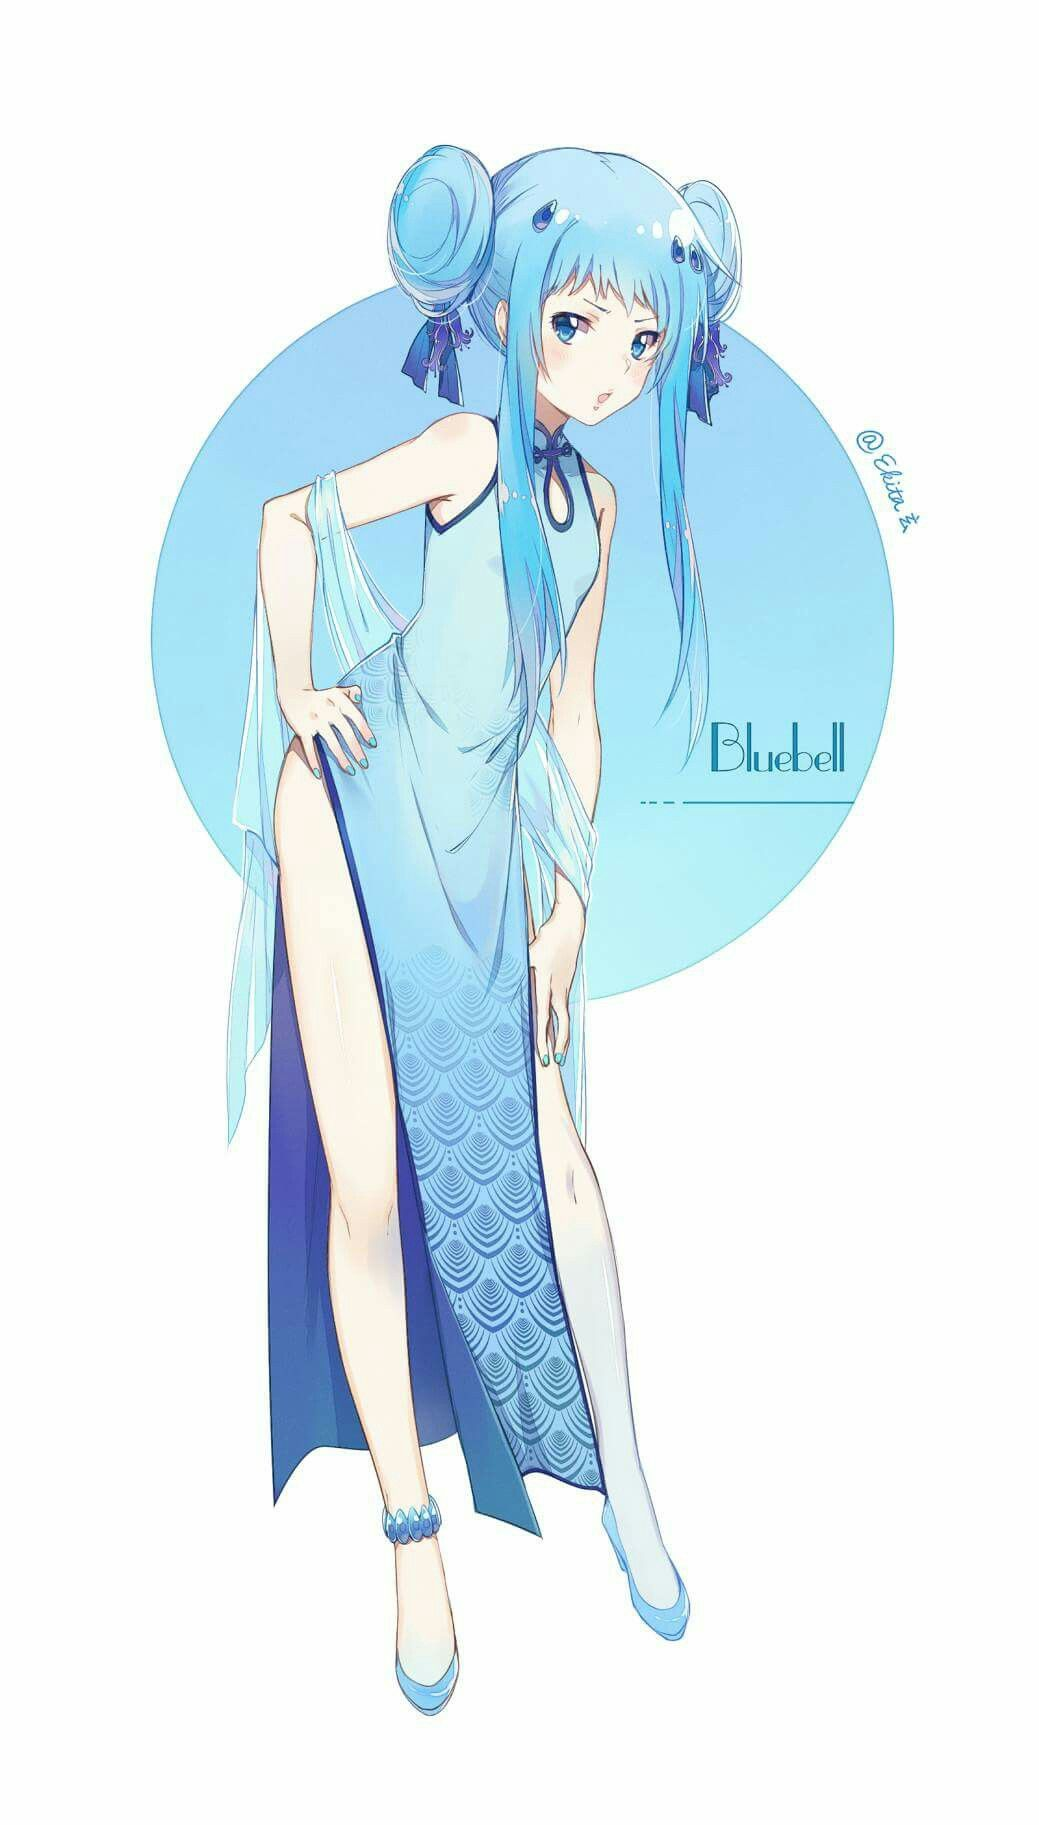 Pin by エレア on vocaloid pinterest hitman reborn vocaloid and